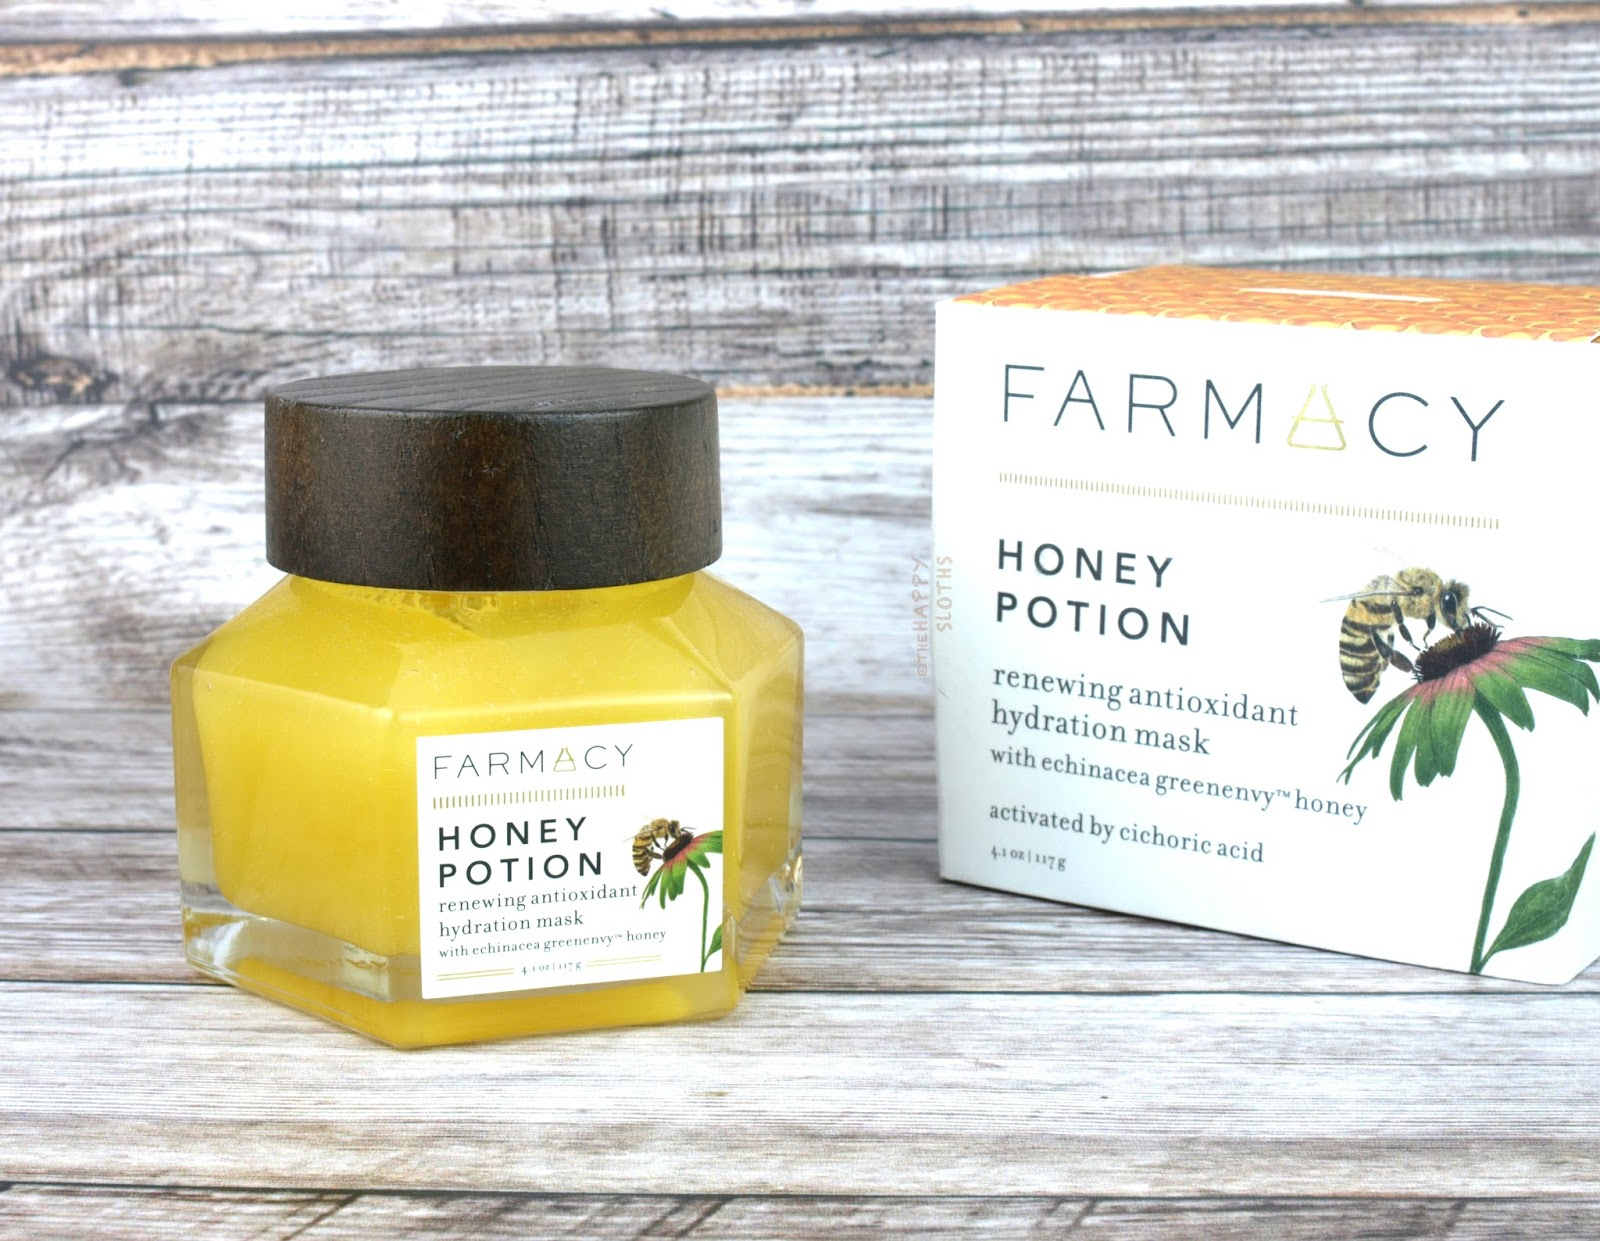 Farmacy Honey Potion Renewing Antioxidant Hydration Mask: Review